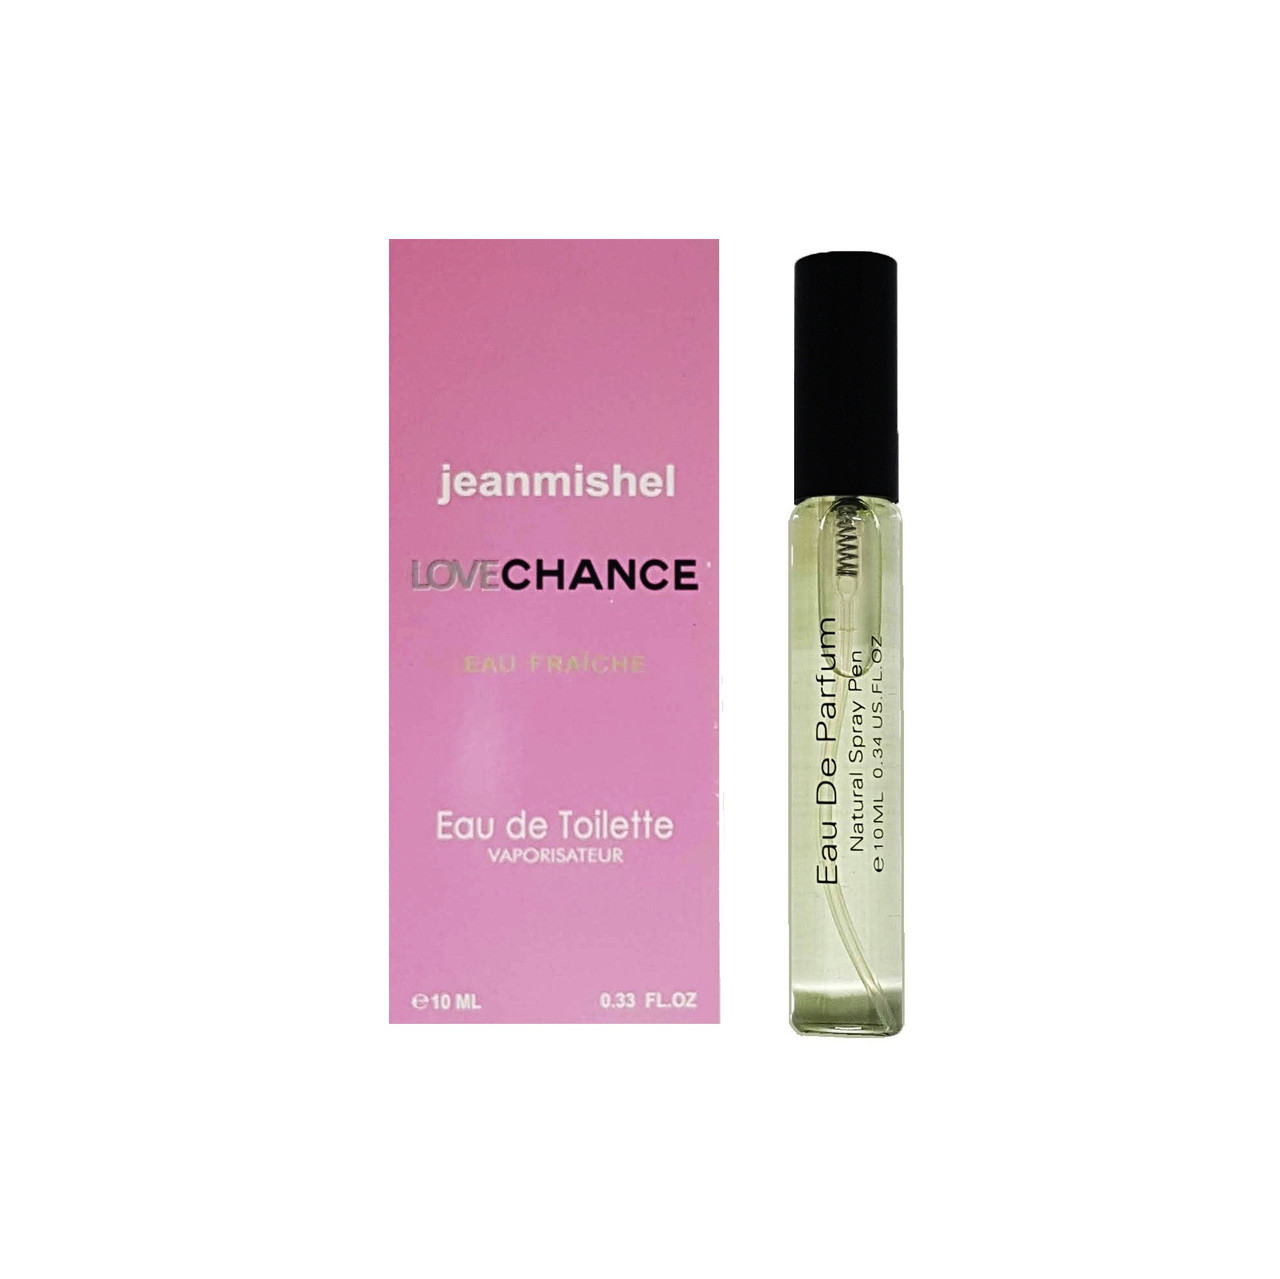 Jeanmishel Love Chance Eau Fraiche (13) 10ml